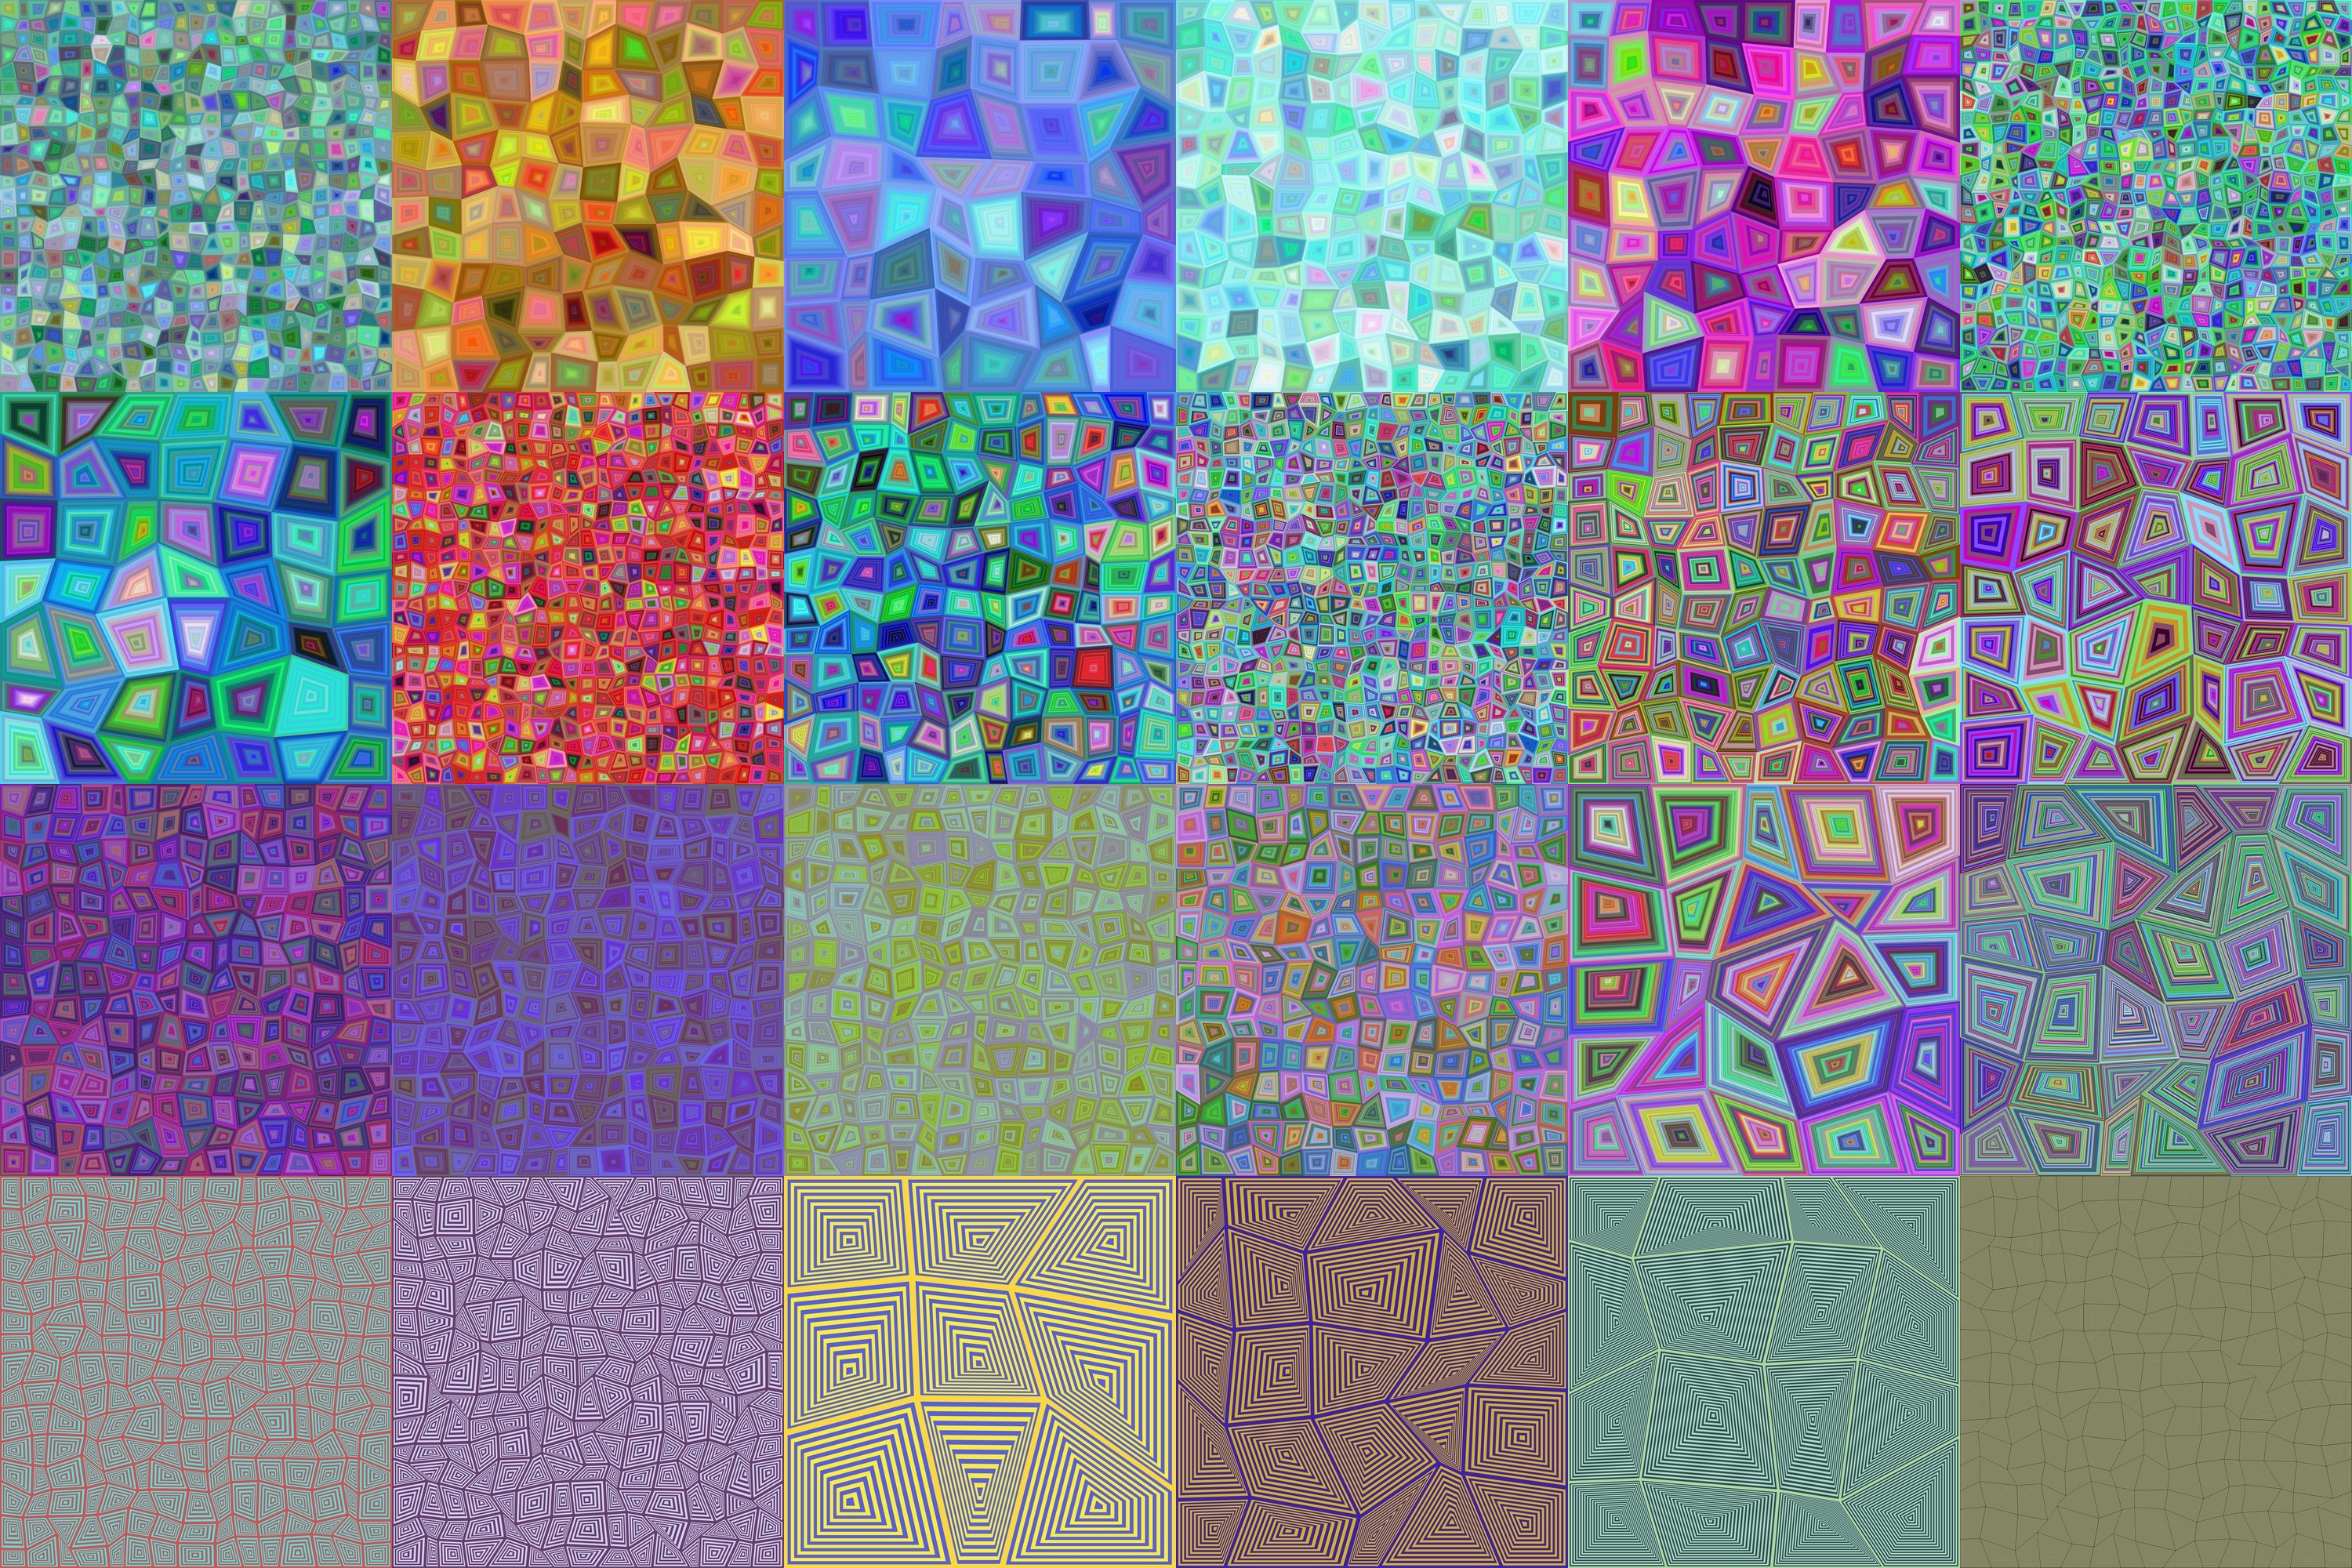 30 colorful rectangle backgrounds (AI, EPS, SVG, JPG 5000x5000) example image 2